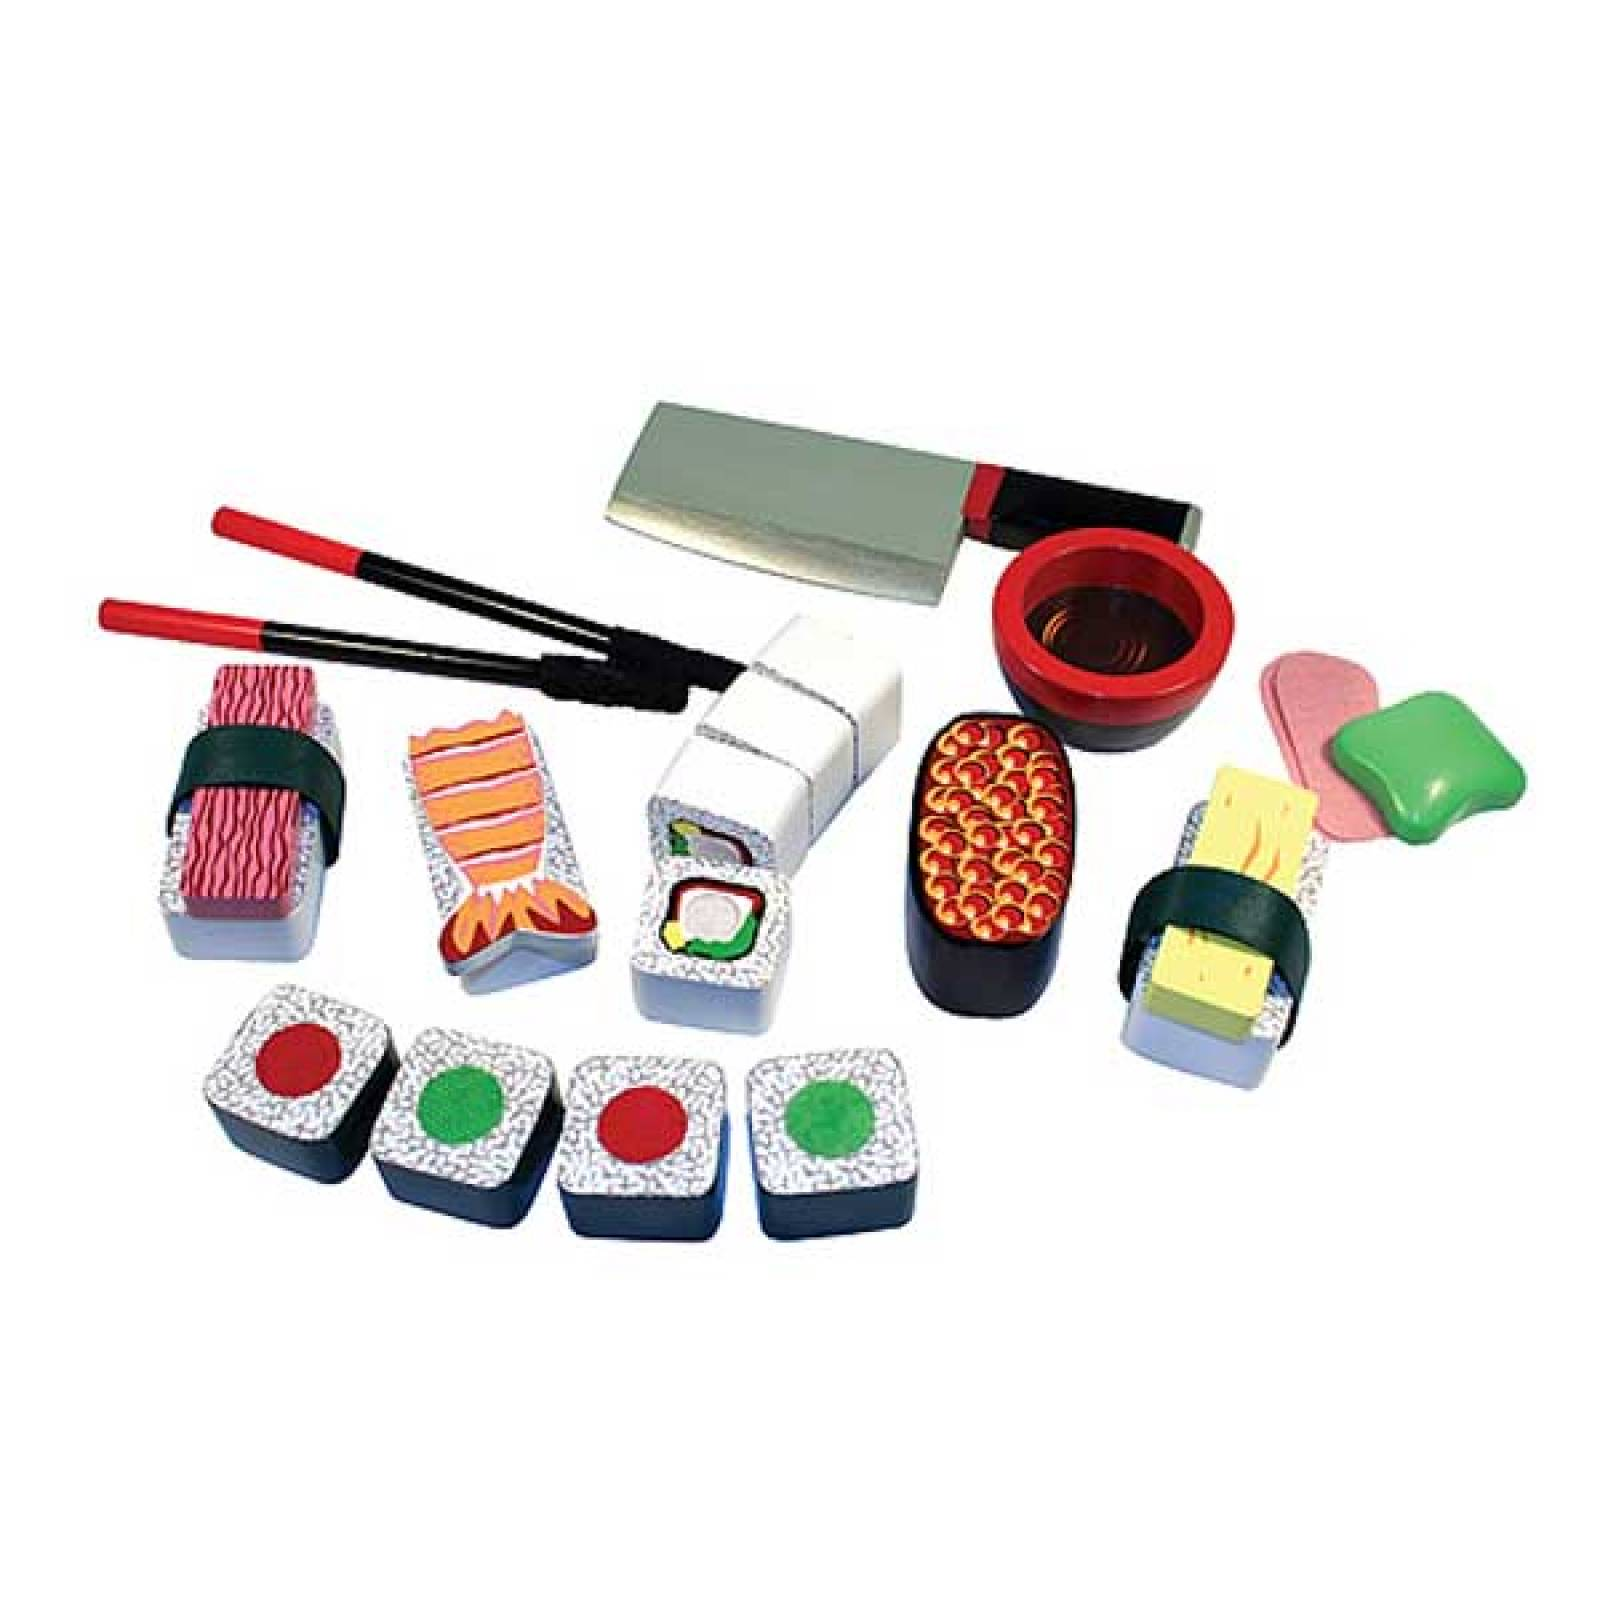 Wooden Sushi Slicing Play Food Set 3+ thumbnails